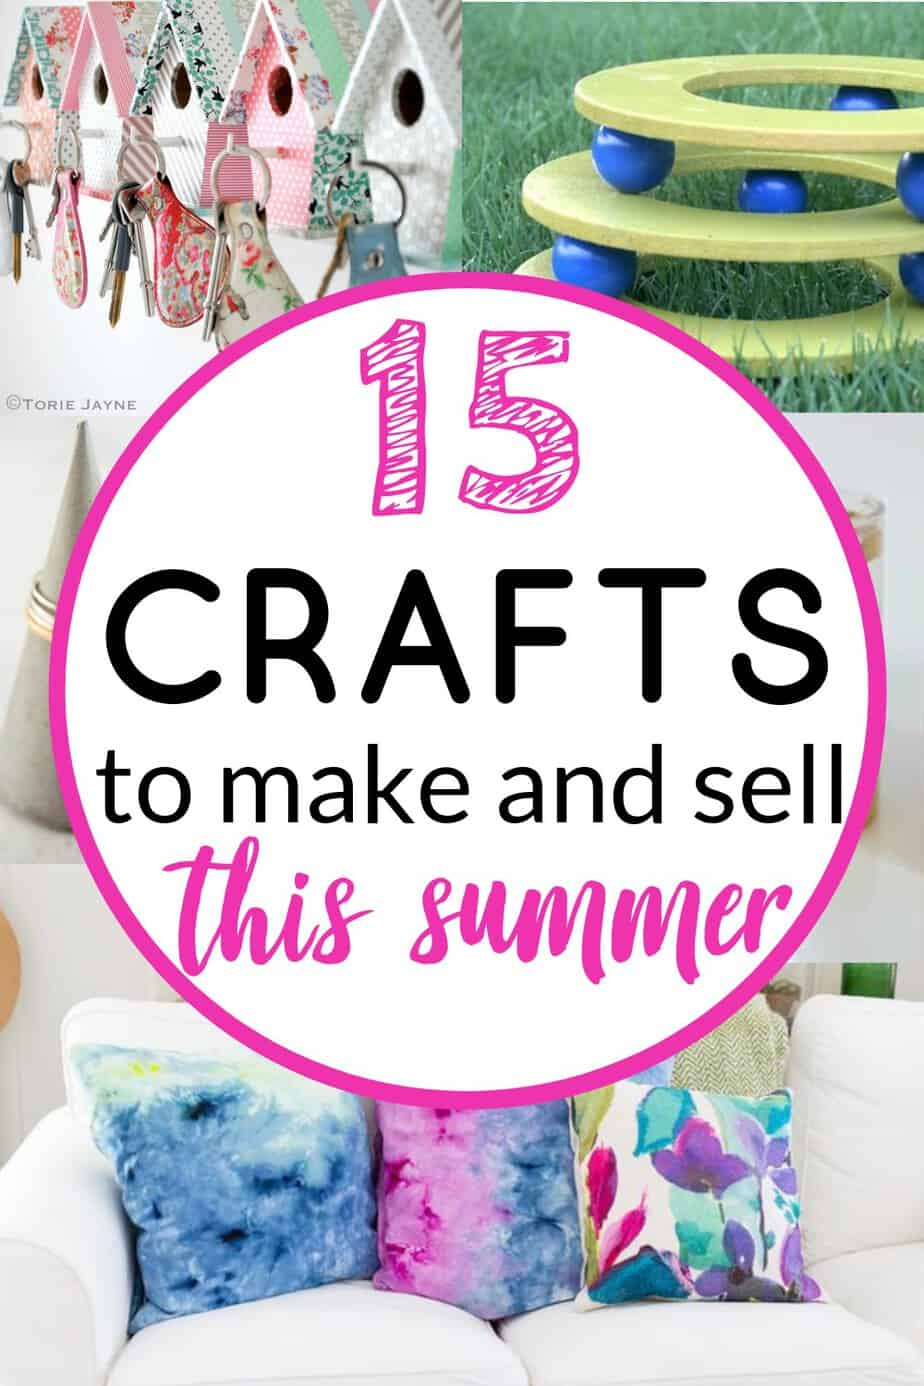 Crafts to make and sell this summer - These 15 crafts are easy and inexpensive to make and sell for extra cash this summer. #craftsforadults #craftstomakeandsell